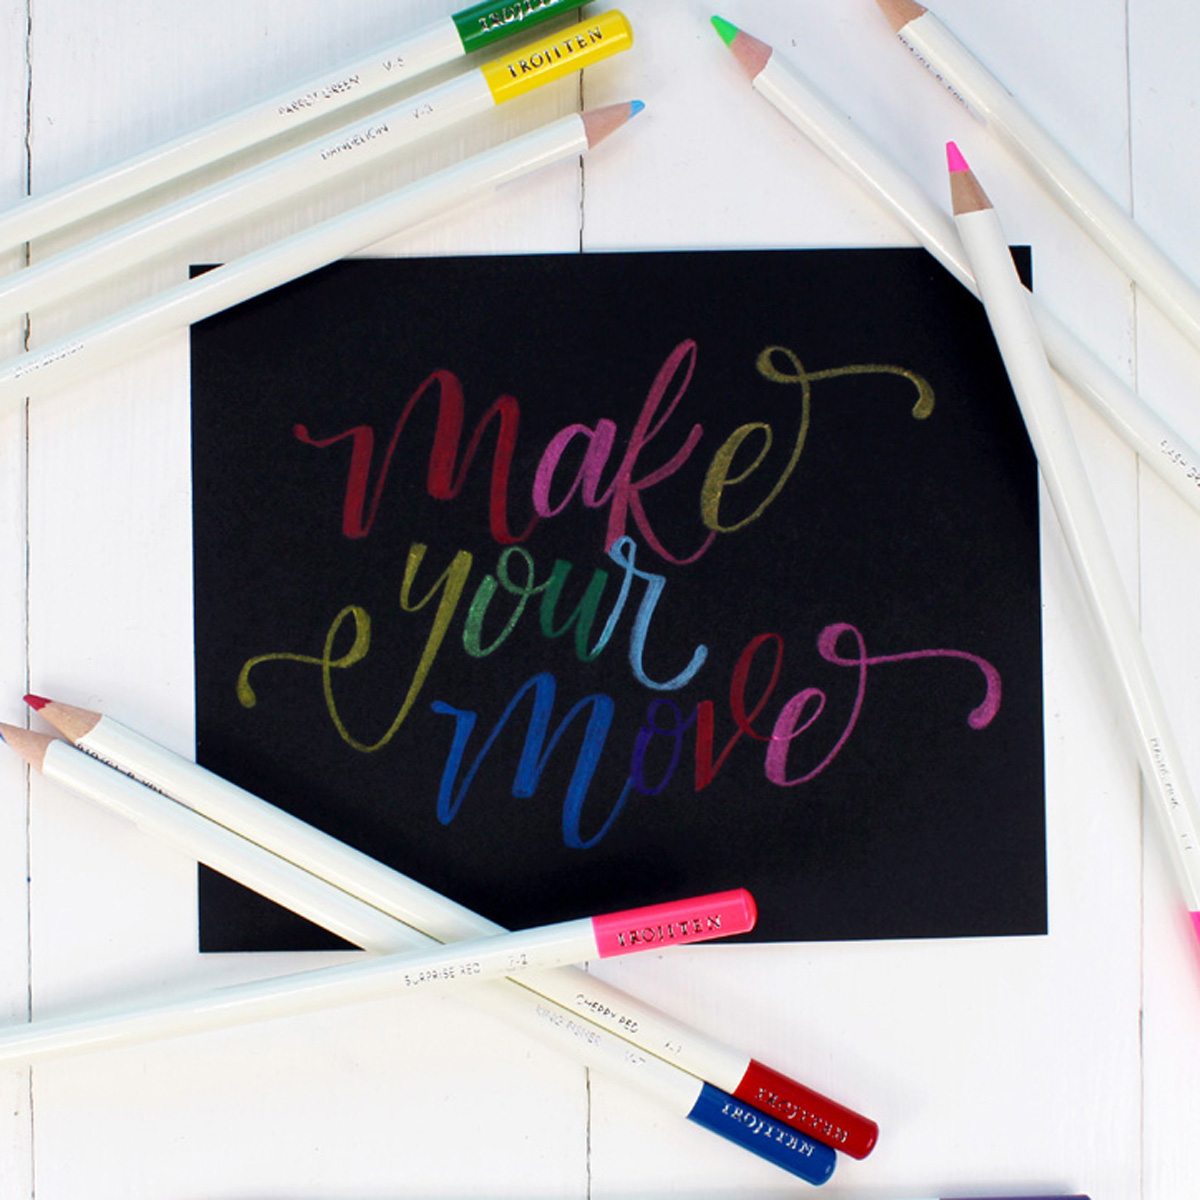 Learn bounce lettering using Tombow Irojiten Colored Pencils to create stunning works of art; perfect for handmade cards, home decor or other papercrafting.